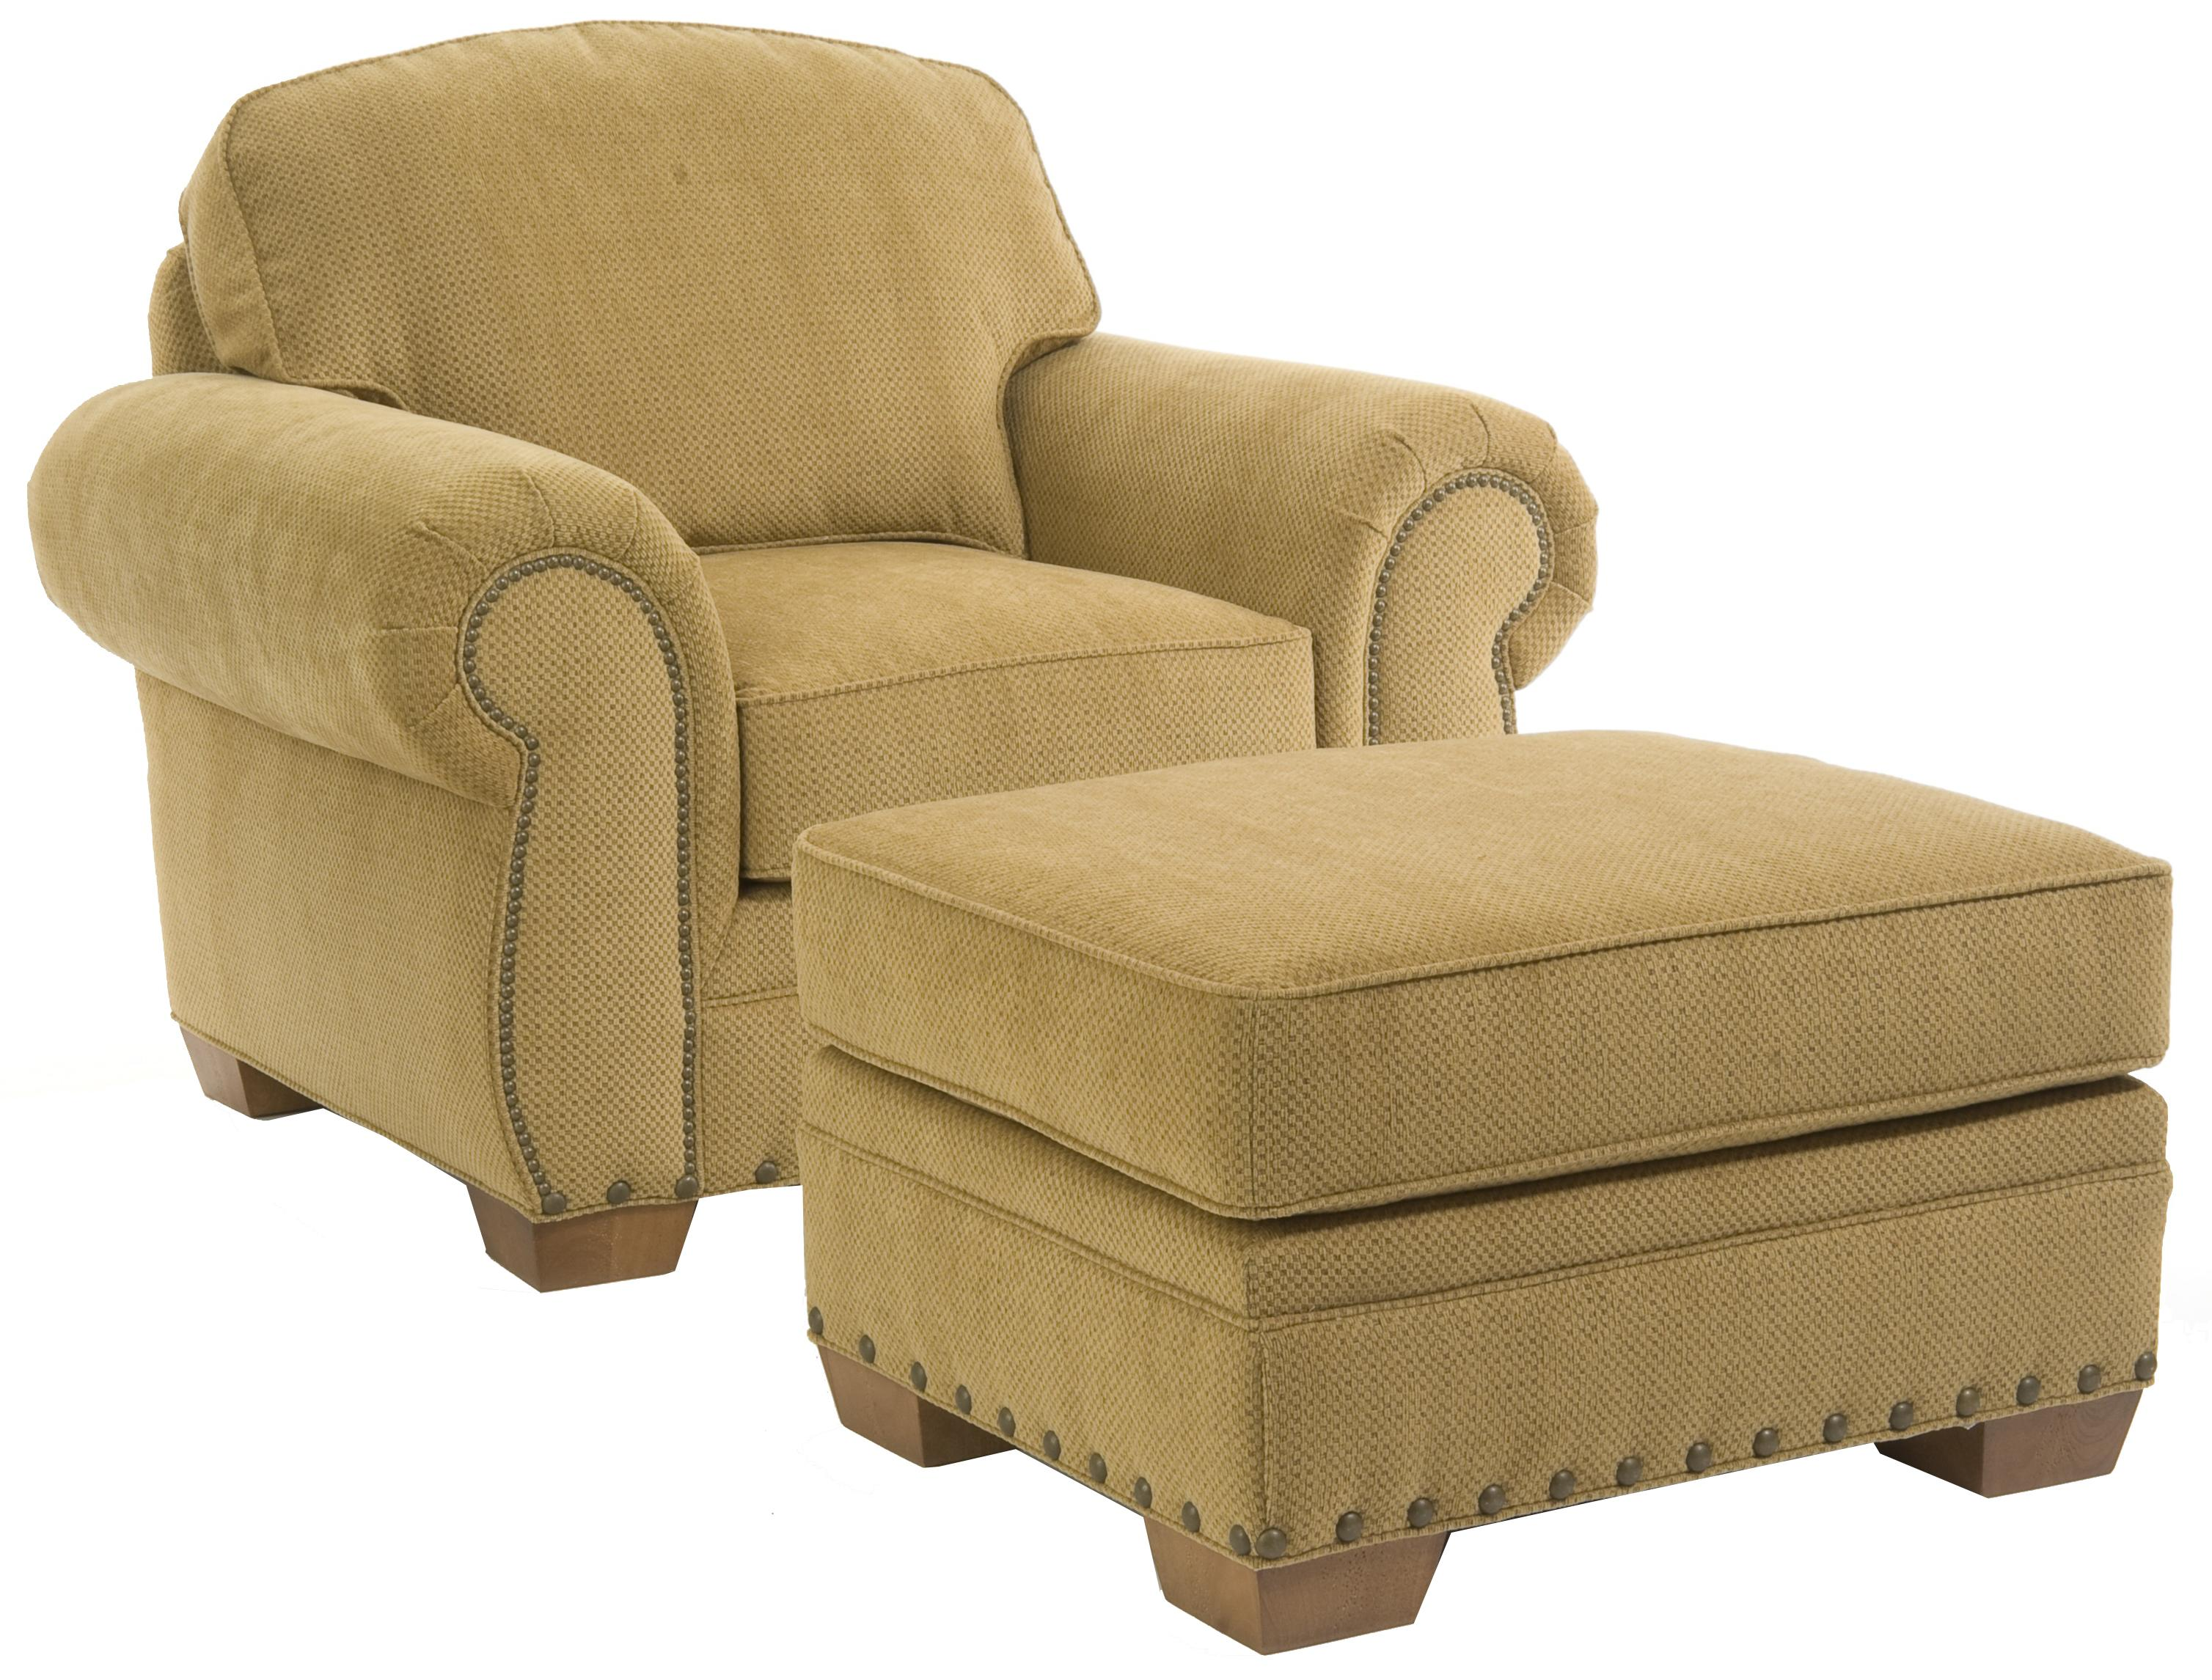 Broyhill Furniture Cambridge 5054 0 Casual Style Chair With Nail Head Trim Becker Furniture